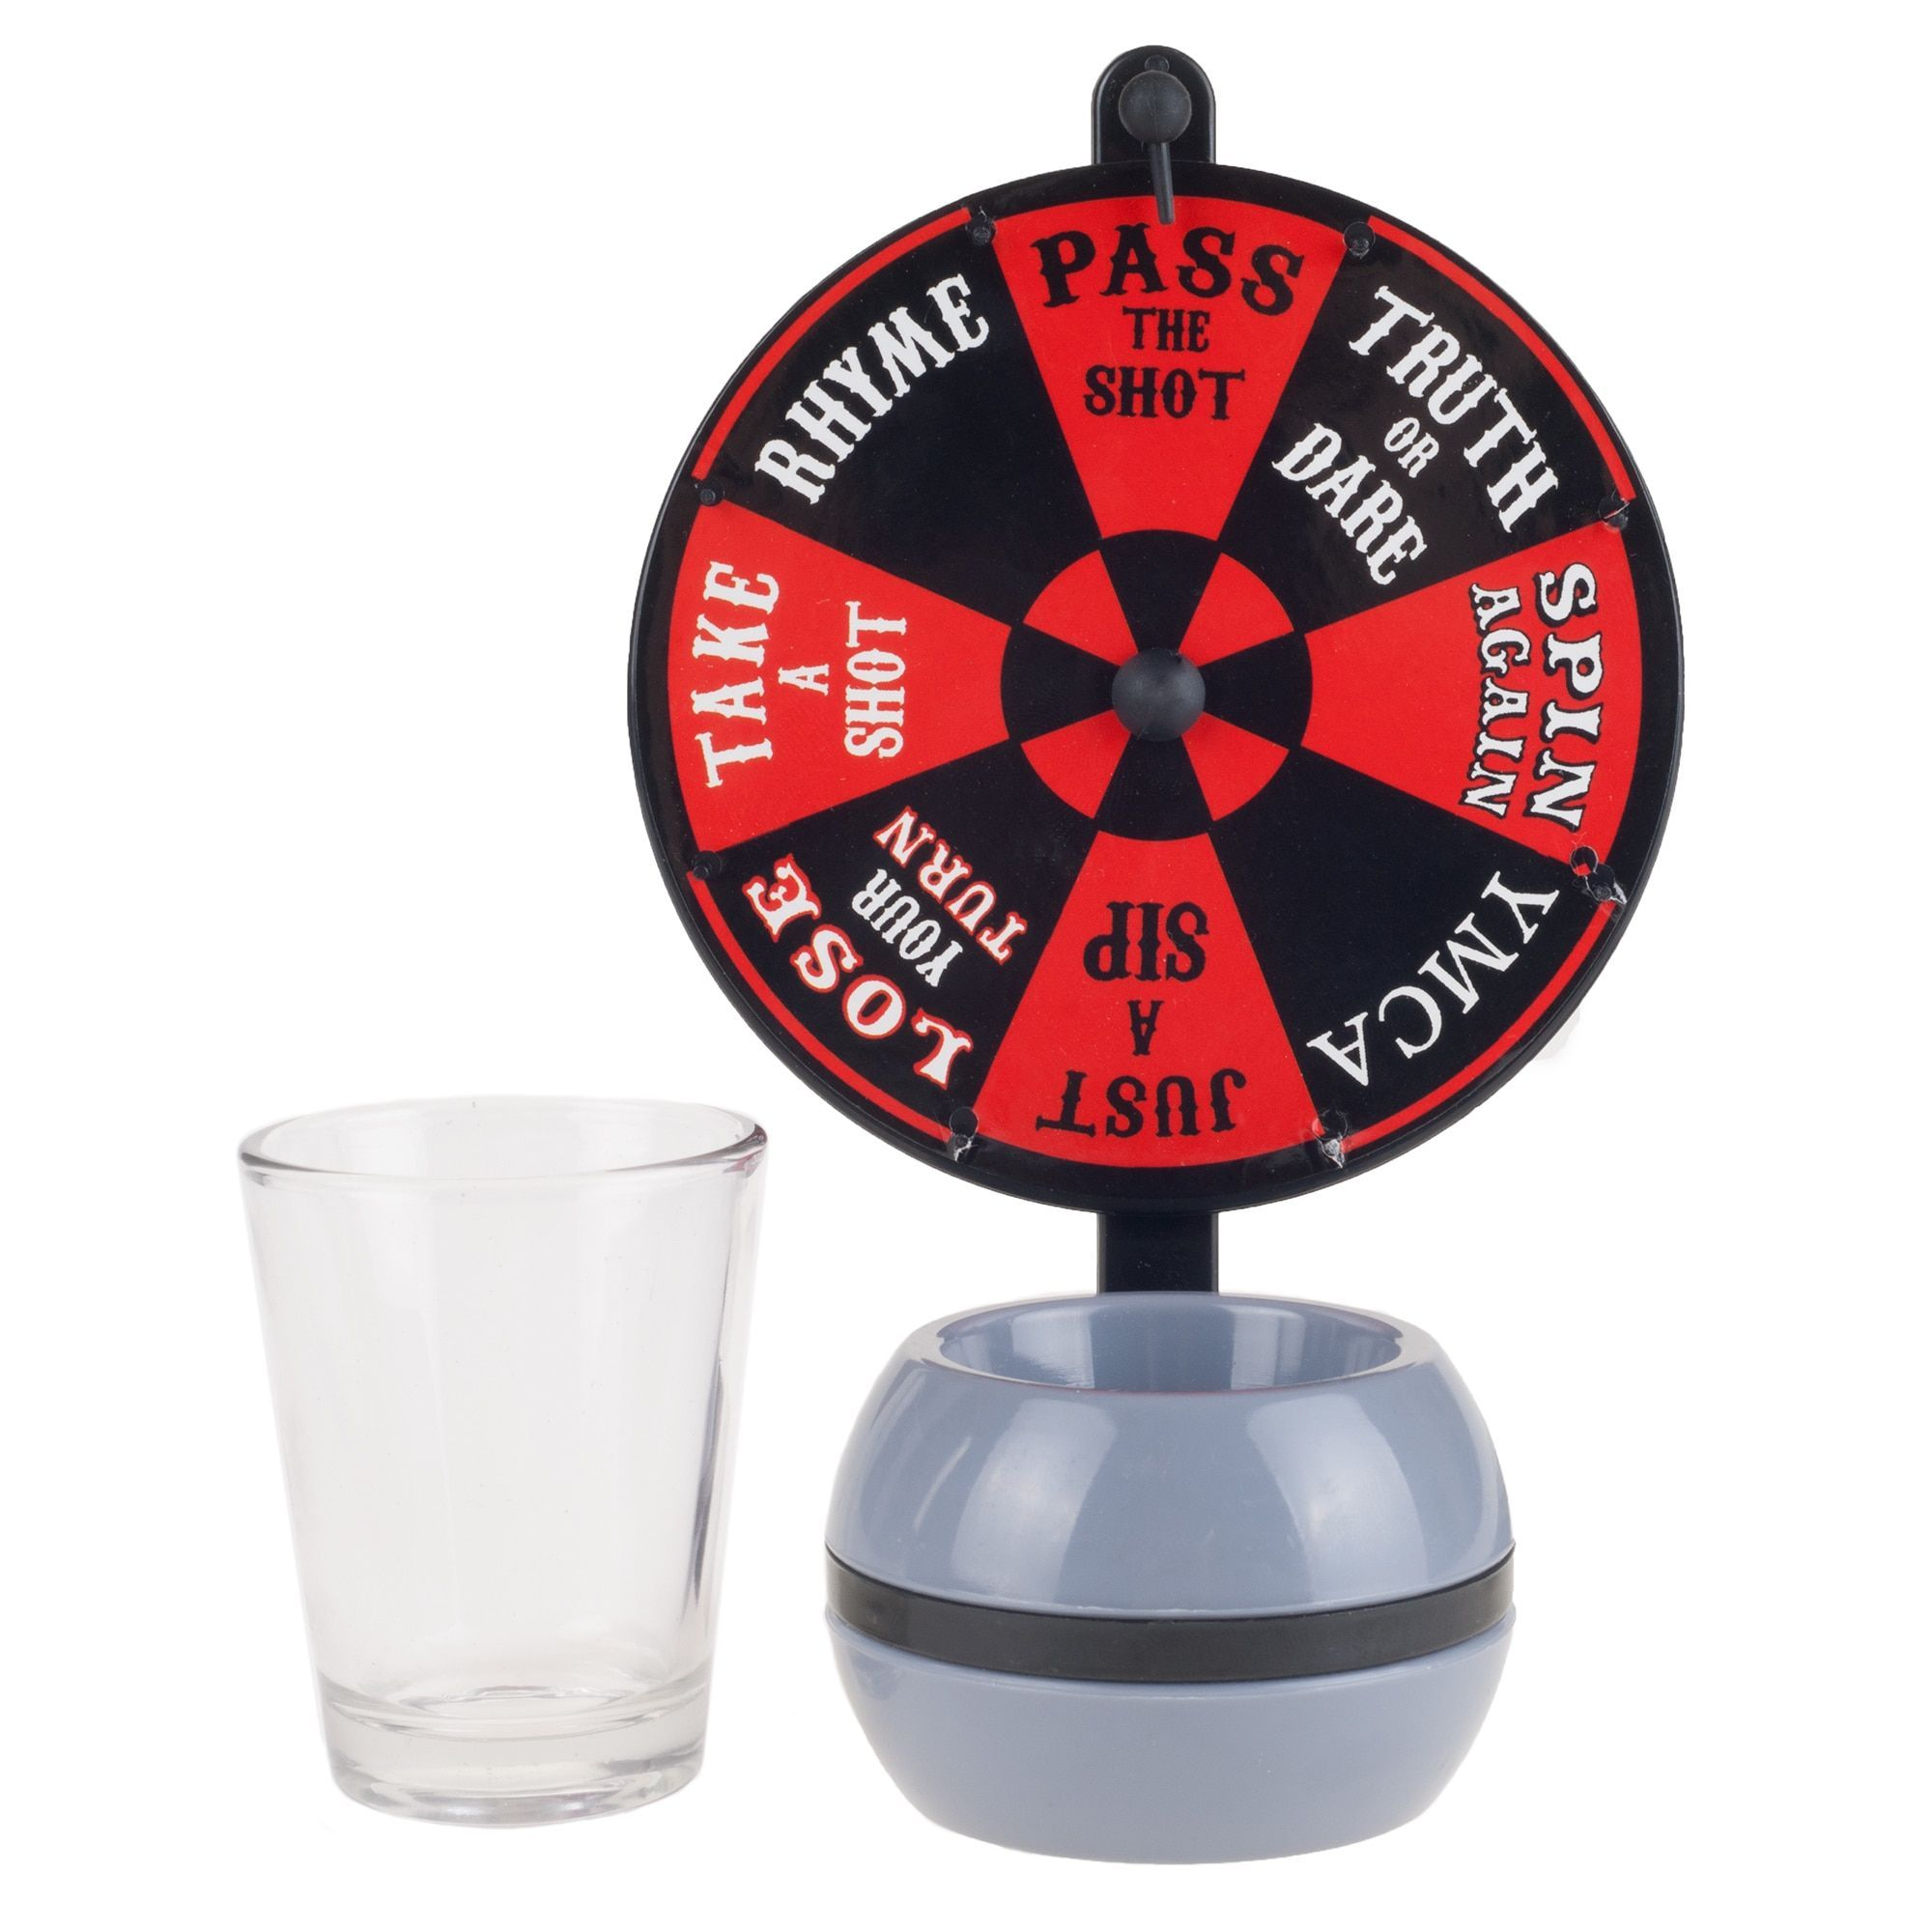 Spin the Wheel Shot Drinking Game Fun Adult Party